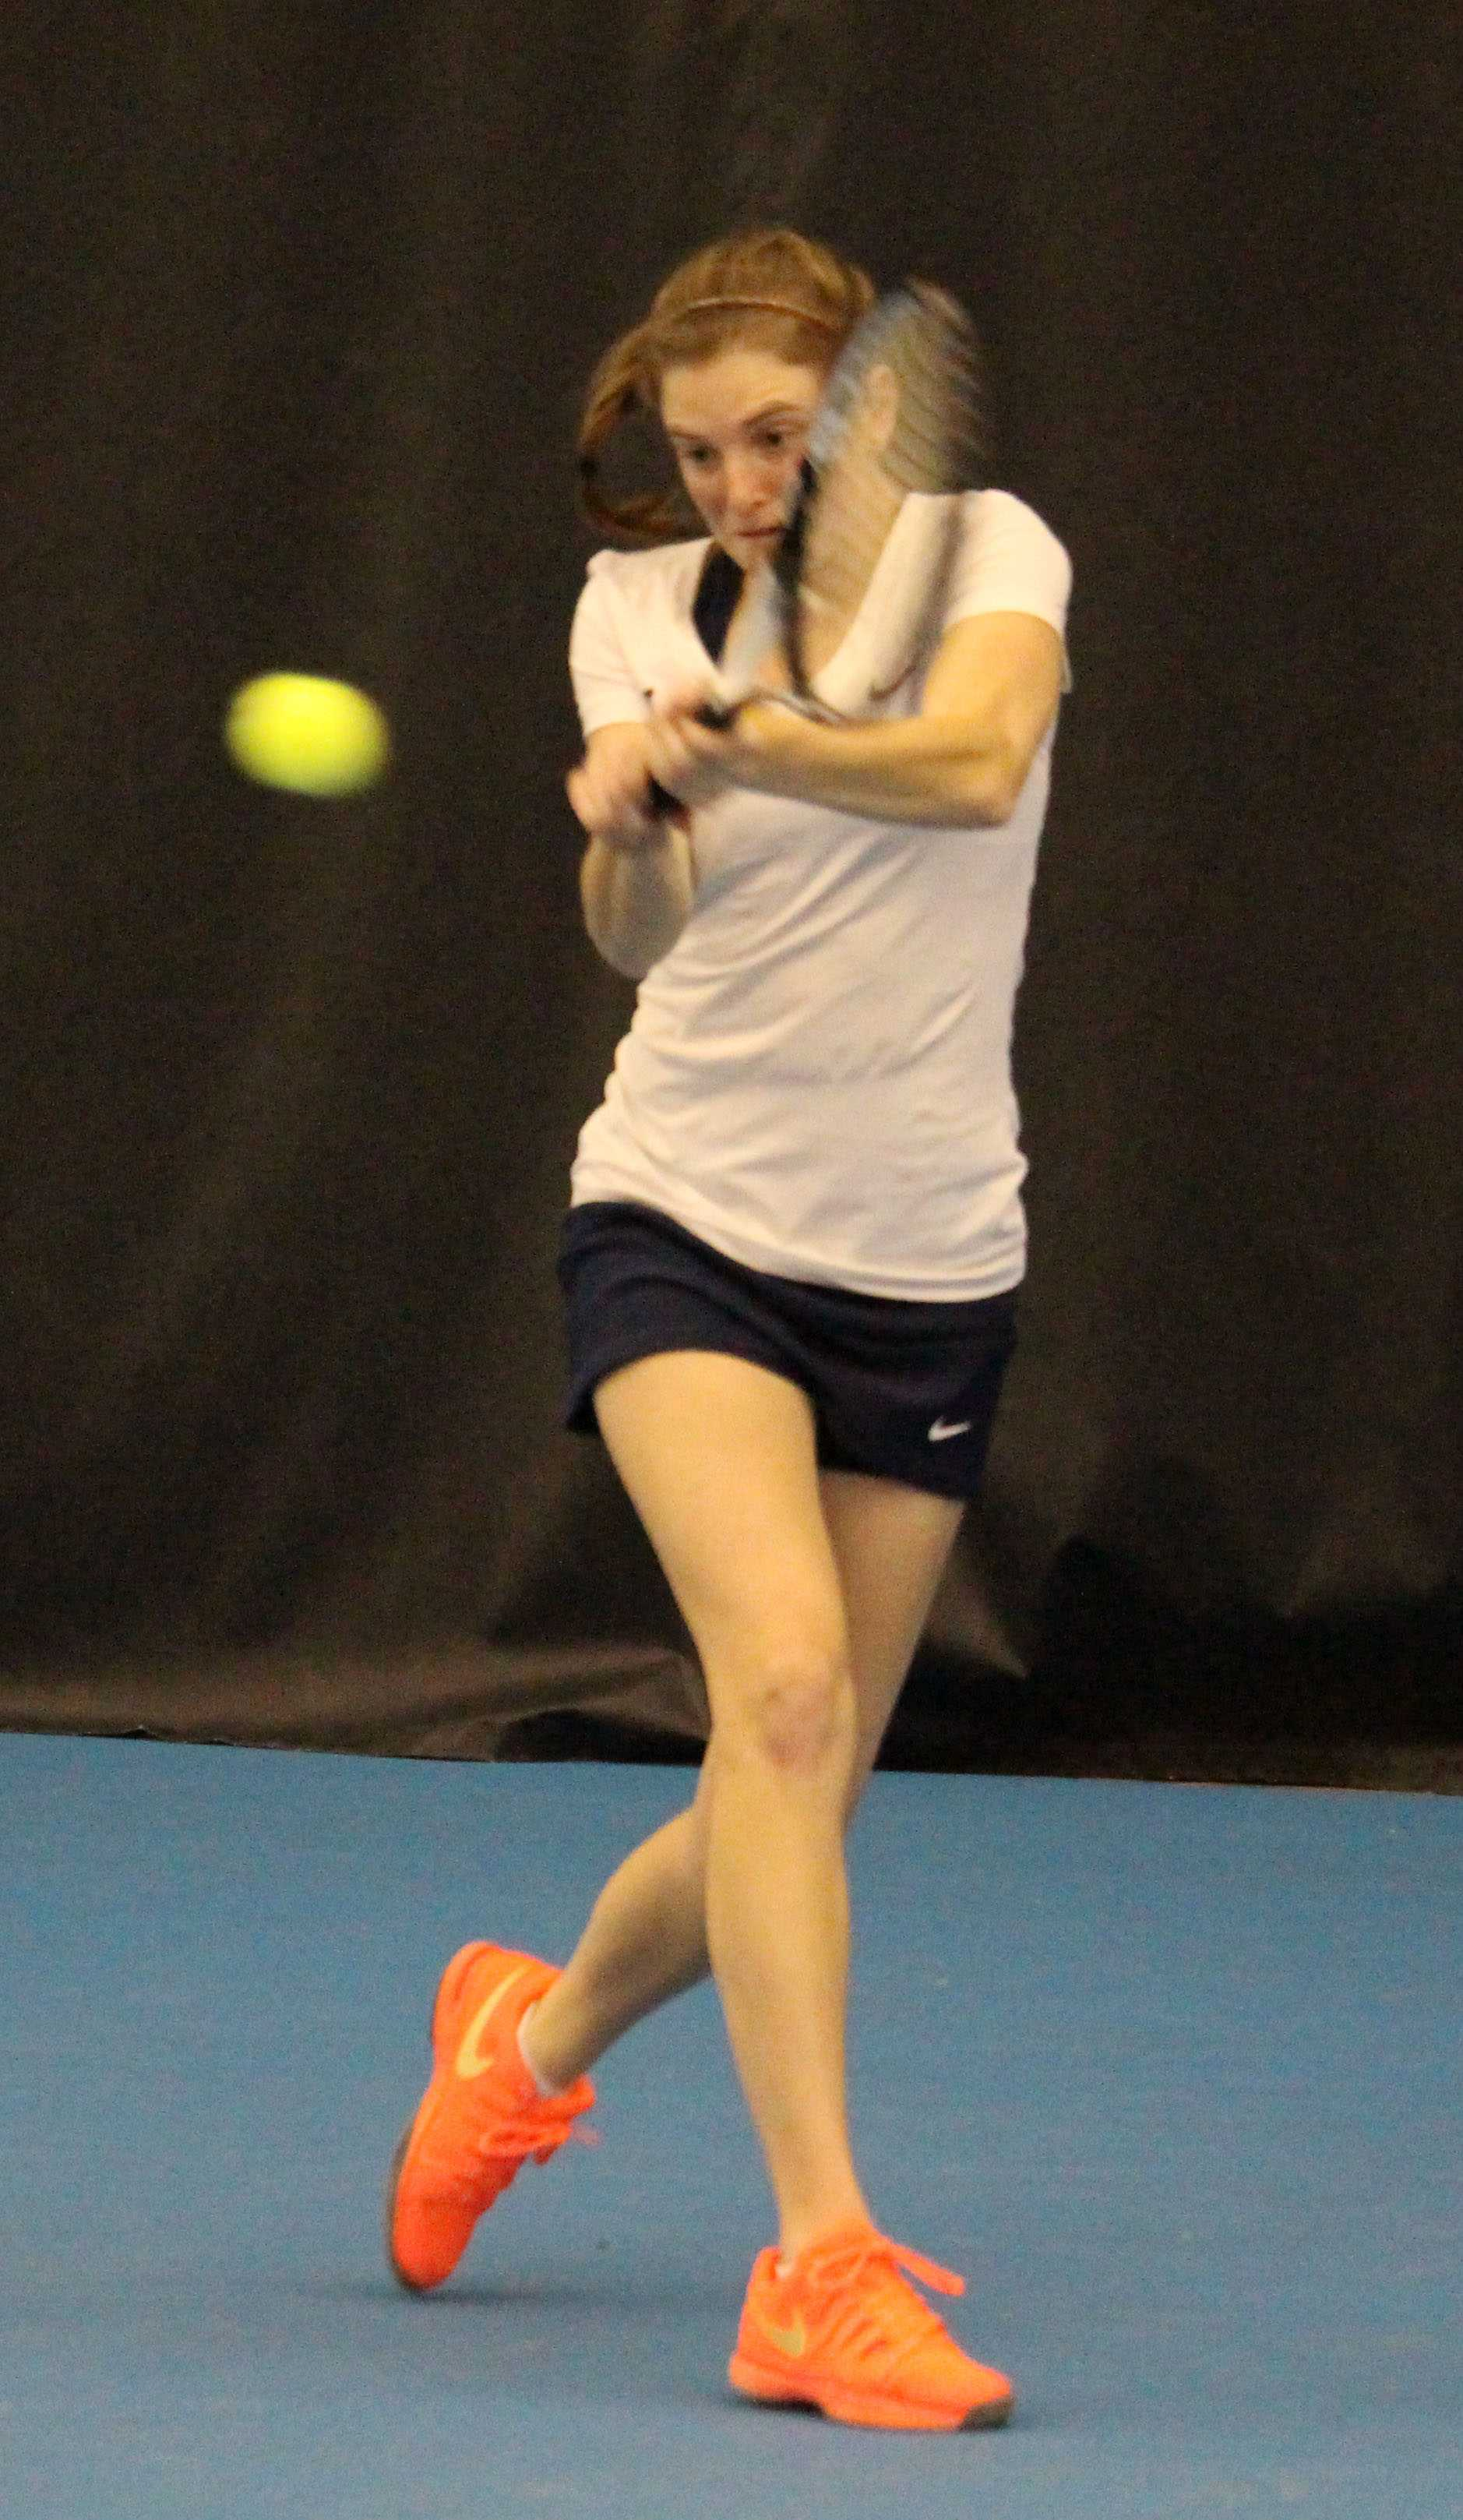 Alexis Casati rallys back the ball at the Atkins Tennis Center on February 13, 2016. Illini beat South Florida 5-2